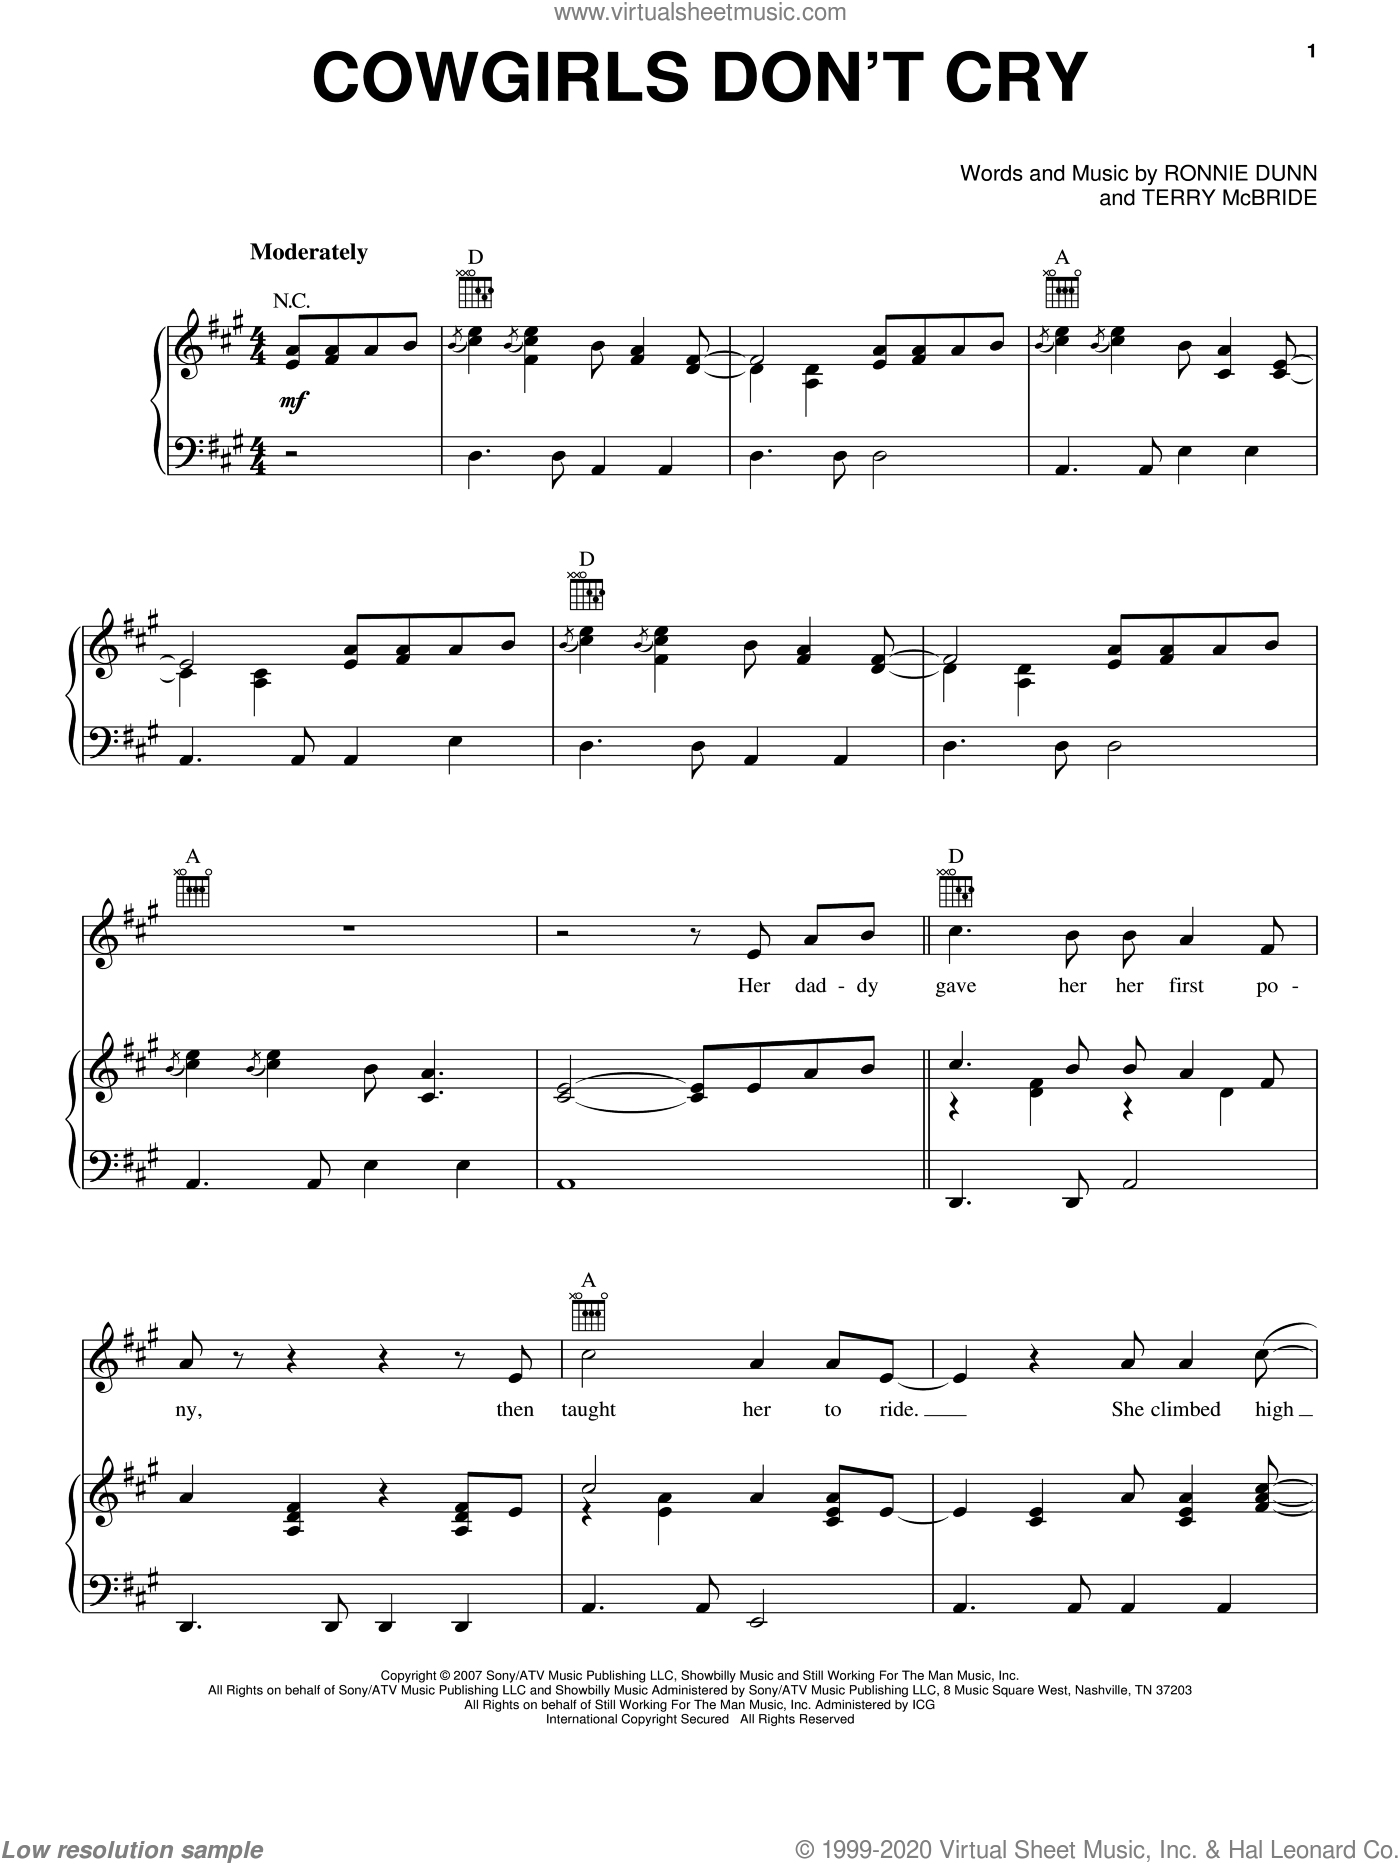 Cowgirls Don't Cry sheet music for voice, piano or guitar by Terry McBride